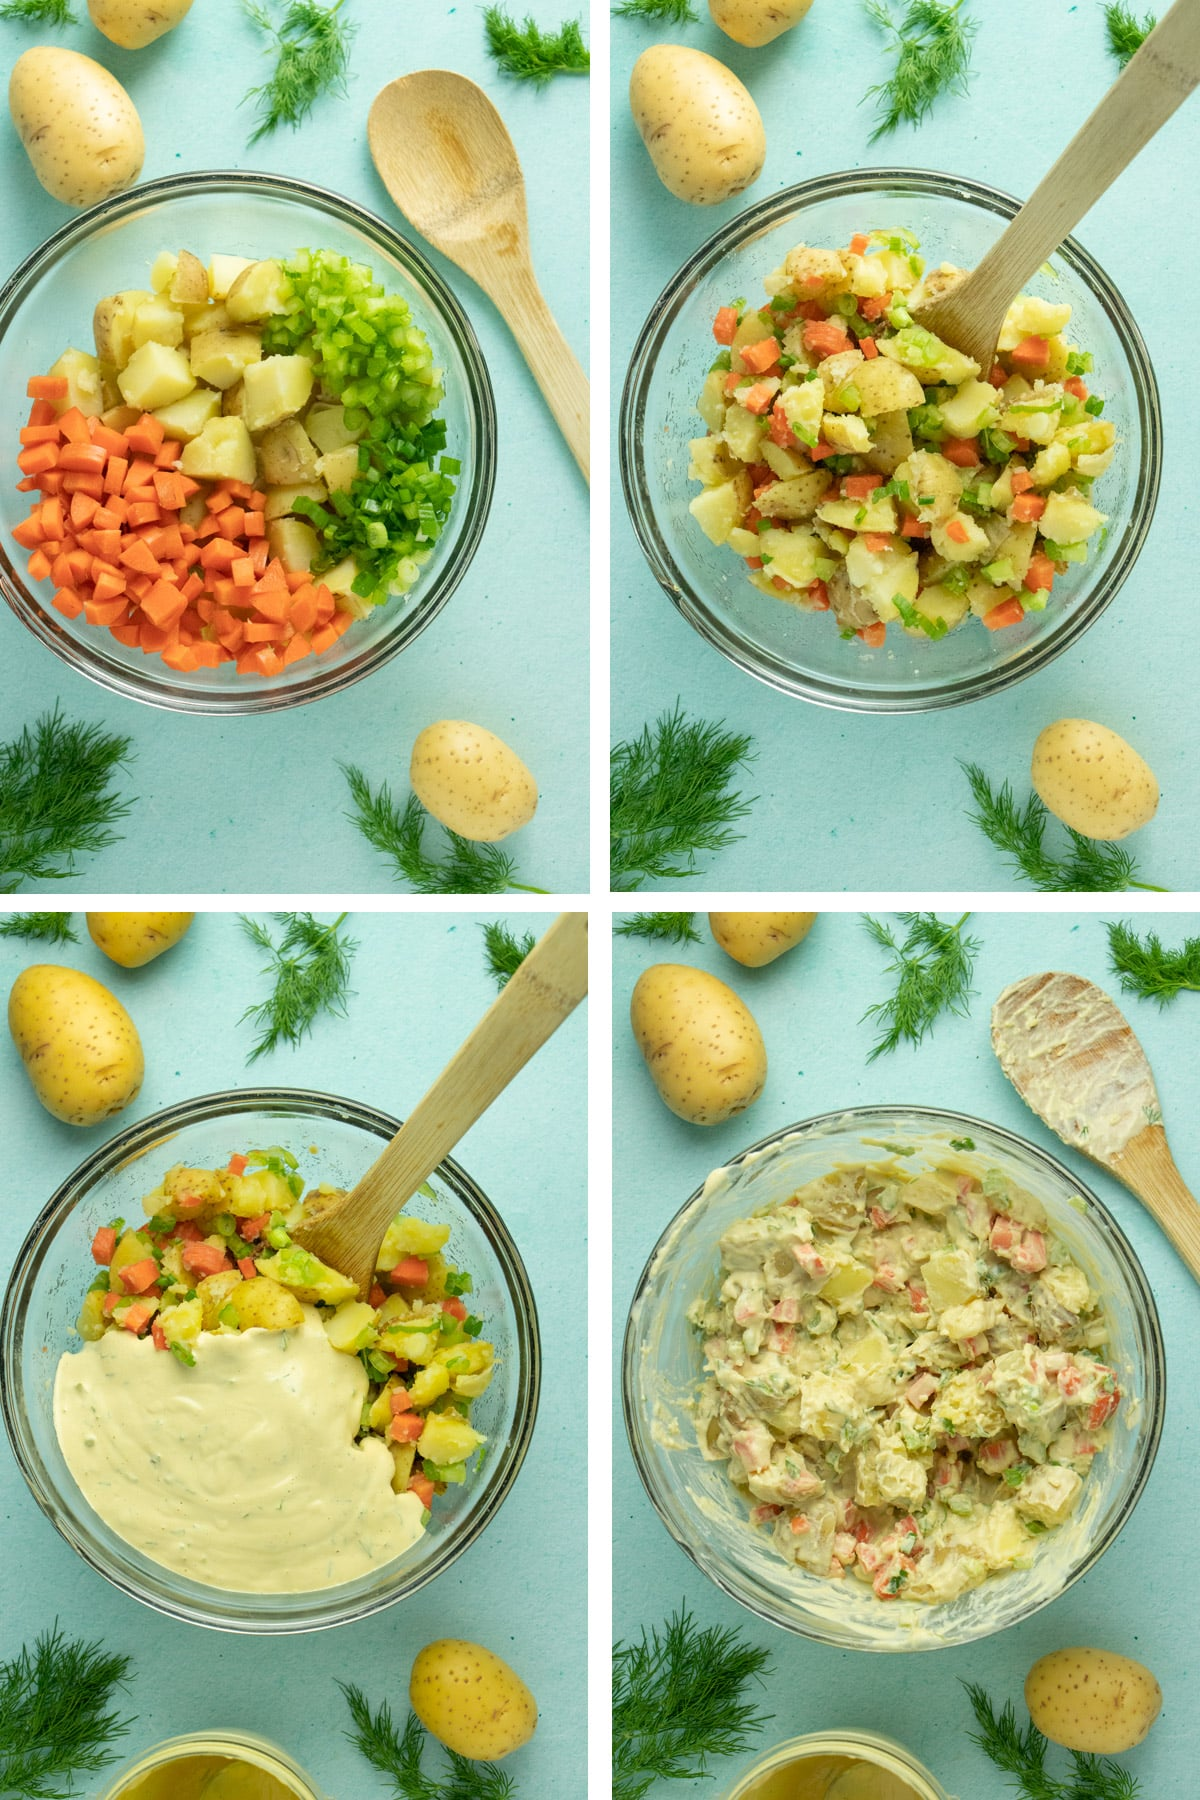 image collage showing mixing the potatoes and vegetables, adding the dill sauce, and mixing up the potato salad in a glass mixing bowl